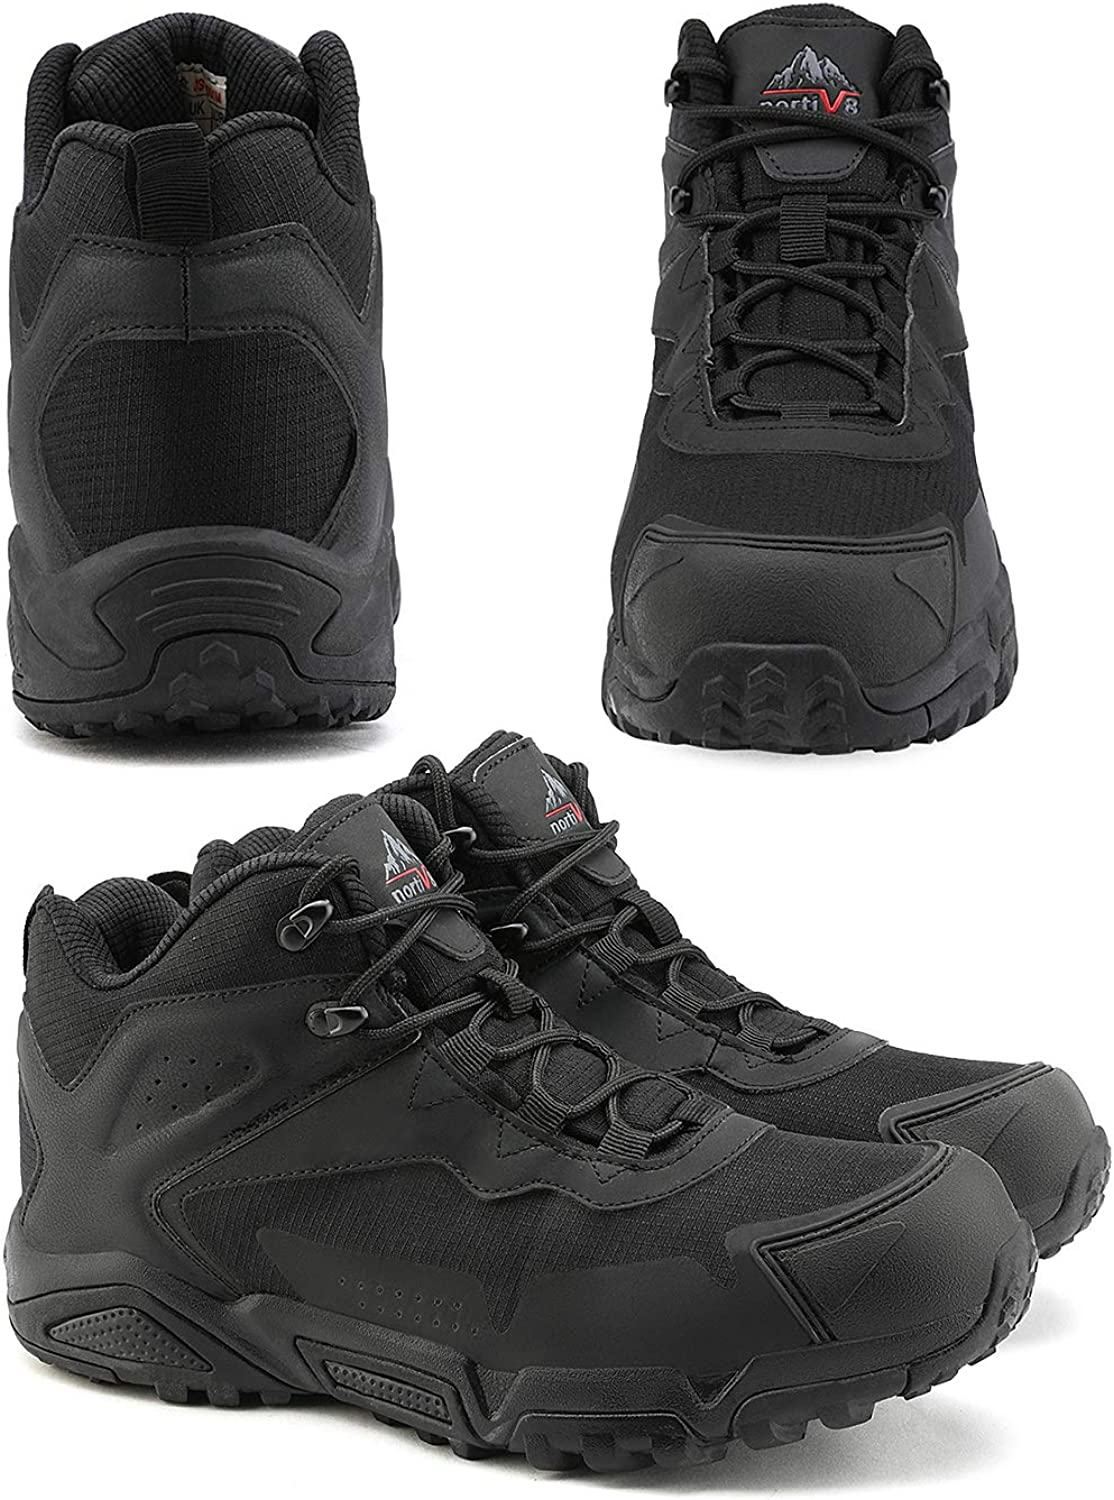 NORTIV 8 Mens Waterproof Hiking Boots Lightweight Mid Trekking Shoes